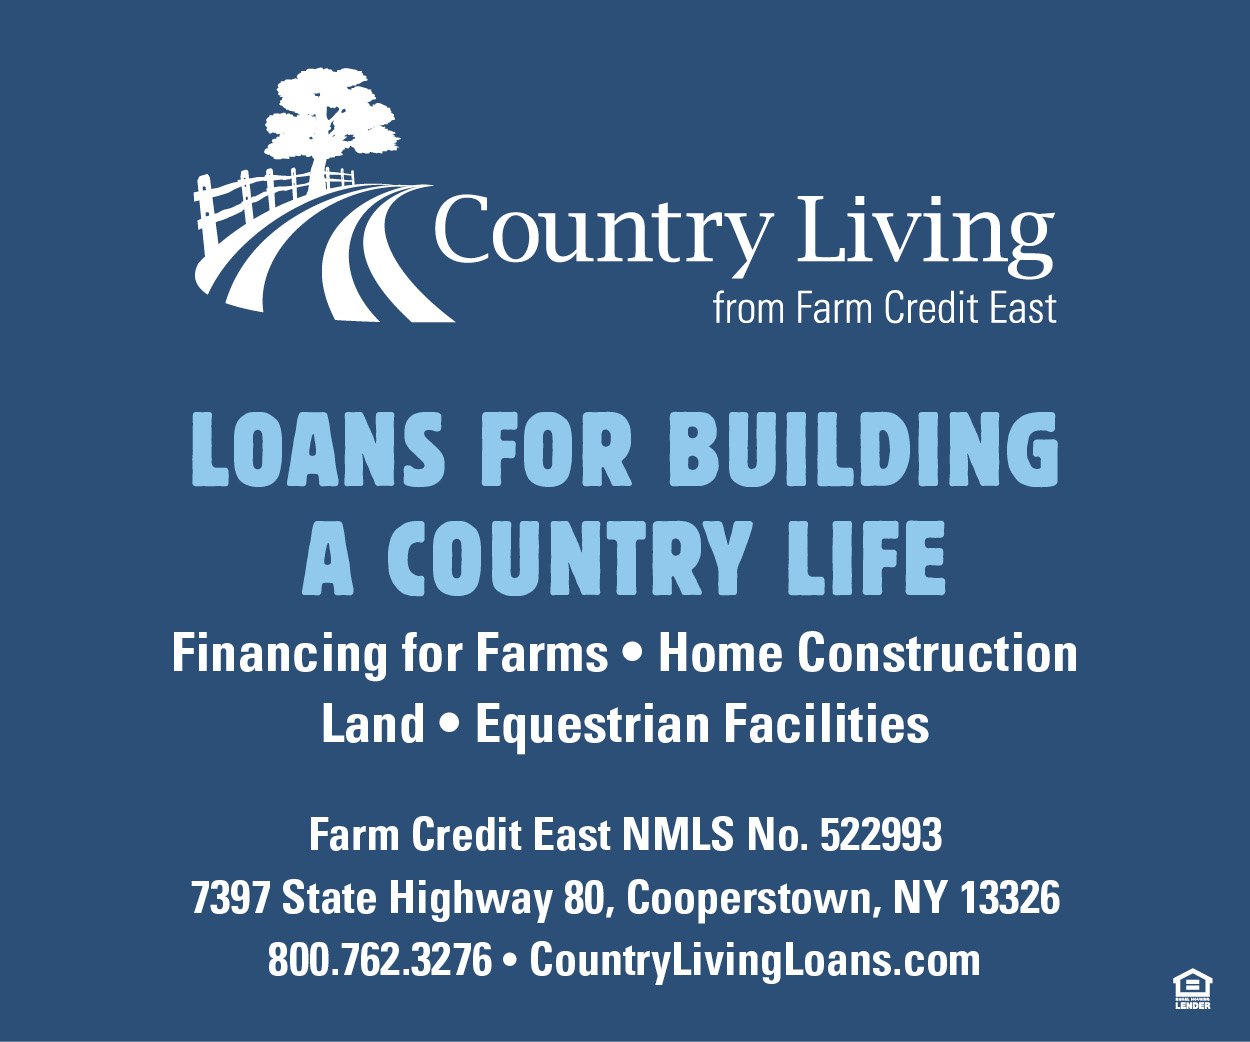 Country Living Loans